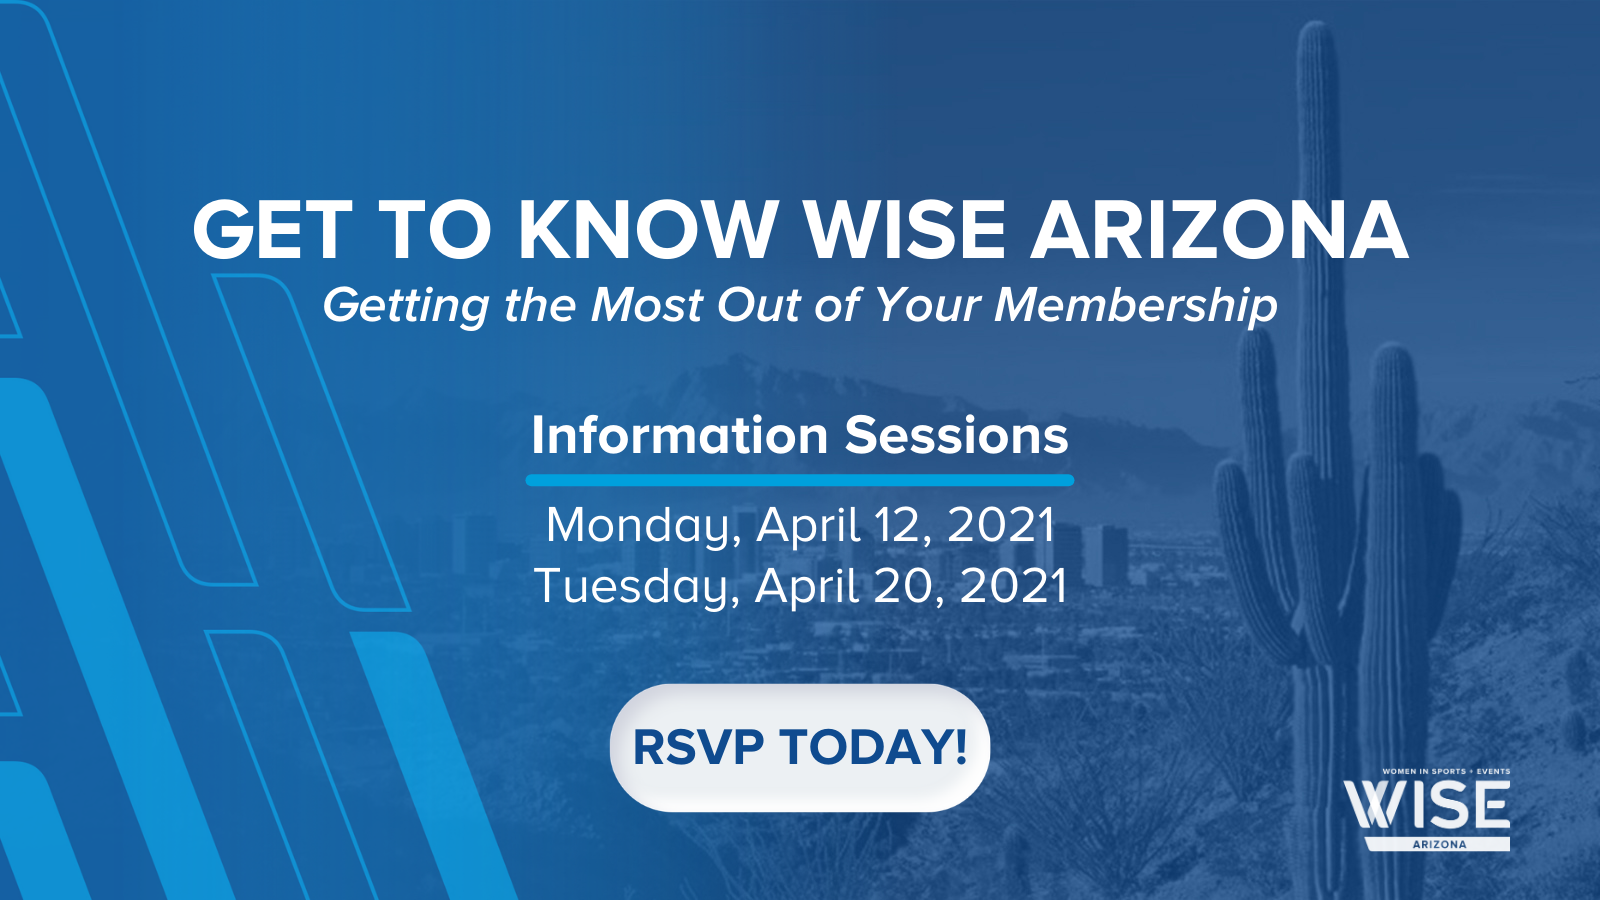 Image of Get to Know WISE Arizona